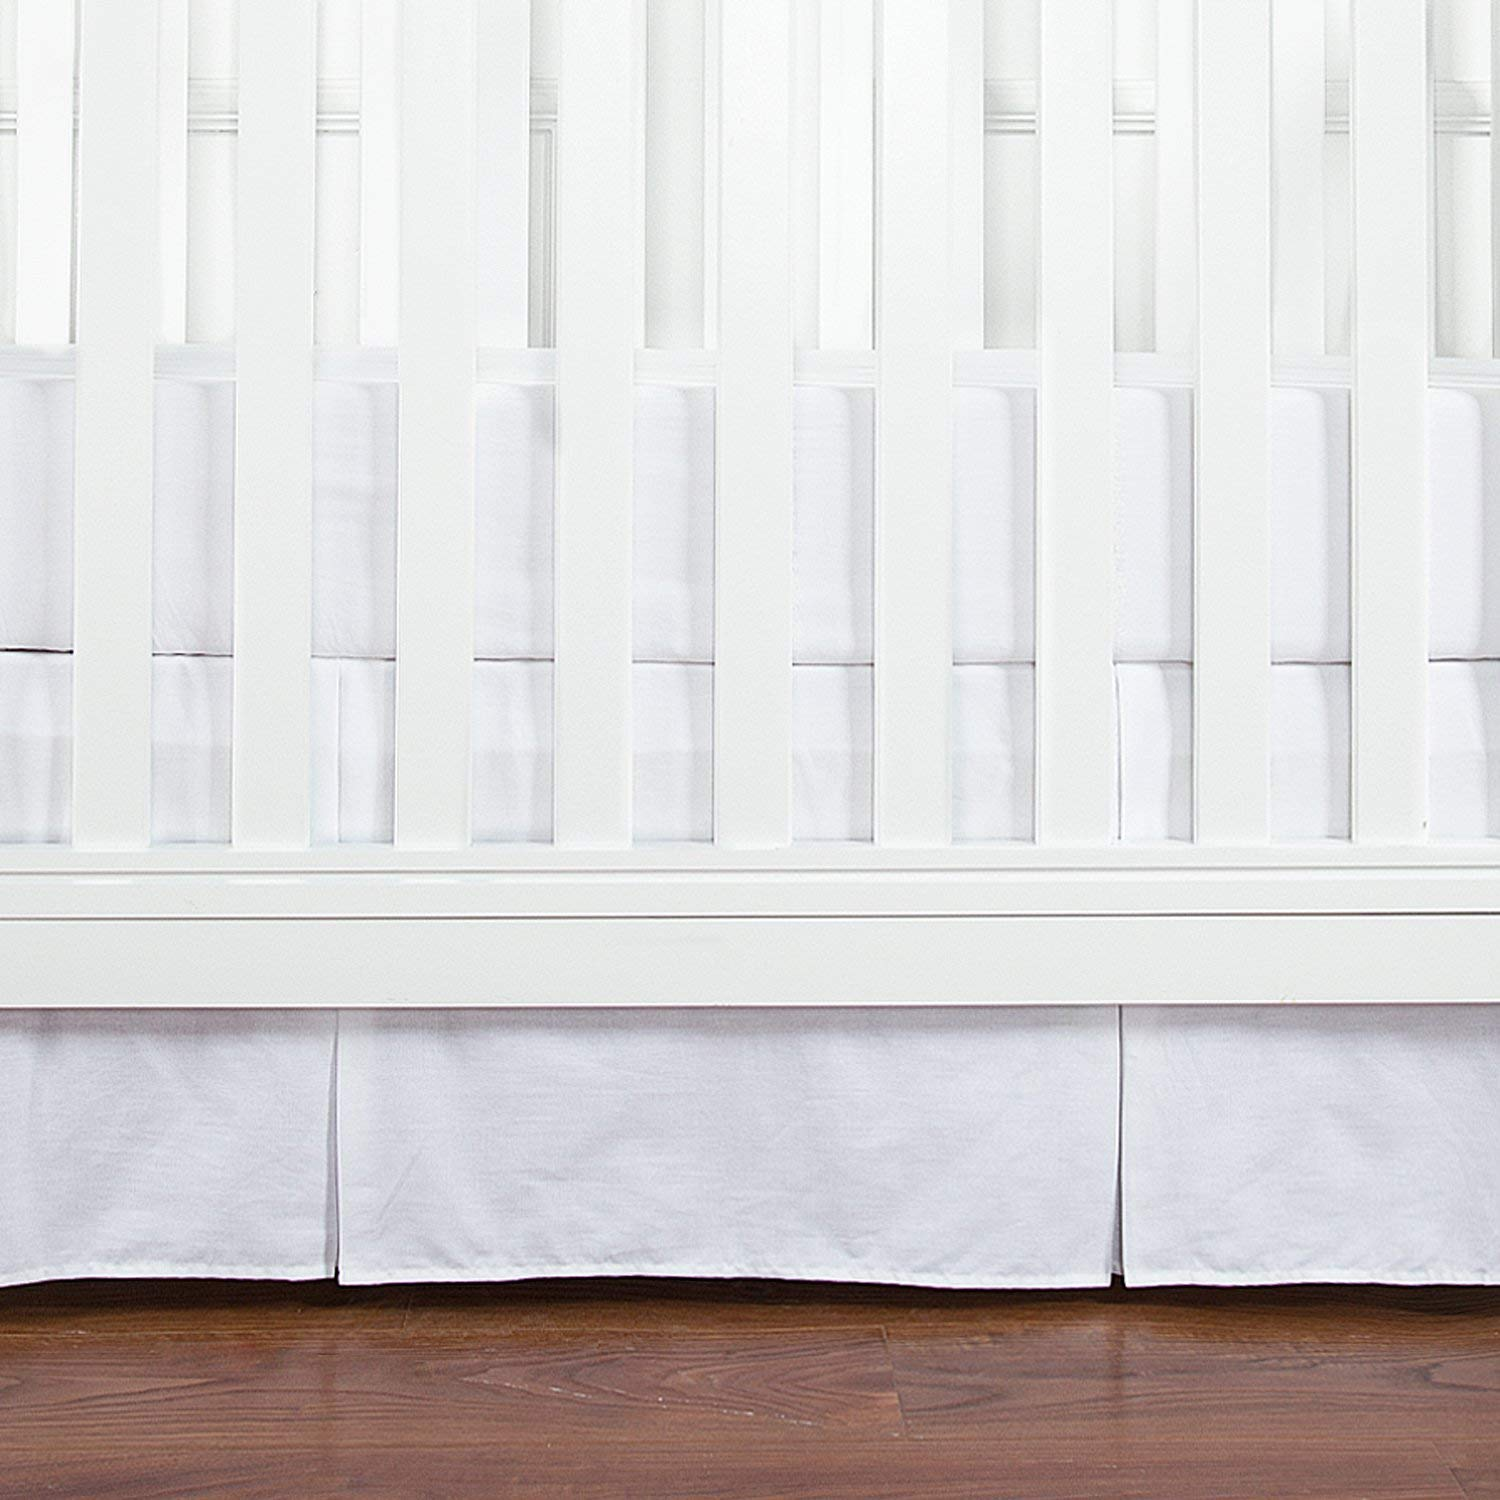 White Crib Skirt 100% Natural Cotton Forest Woodland Split Corner Crib Skirt Pleated Nursery Crib Bedding for Baby Girls or Boys (Measure 28'' x 52'' with 14'' Drop Length, White Solid) (White) by saharbeddings